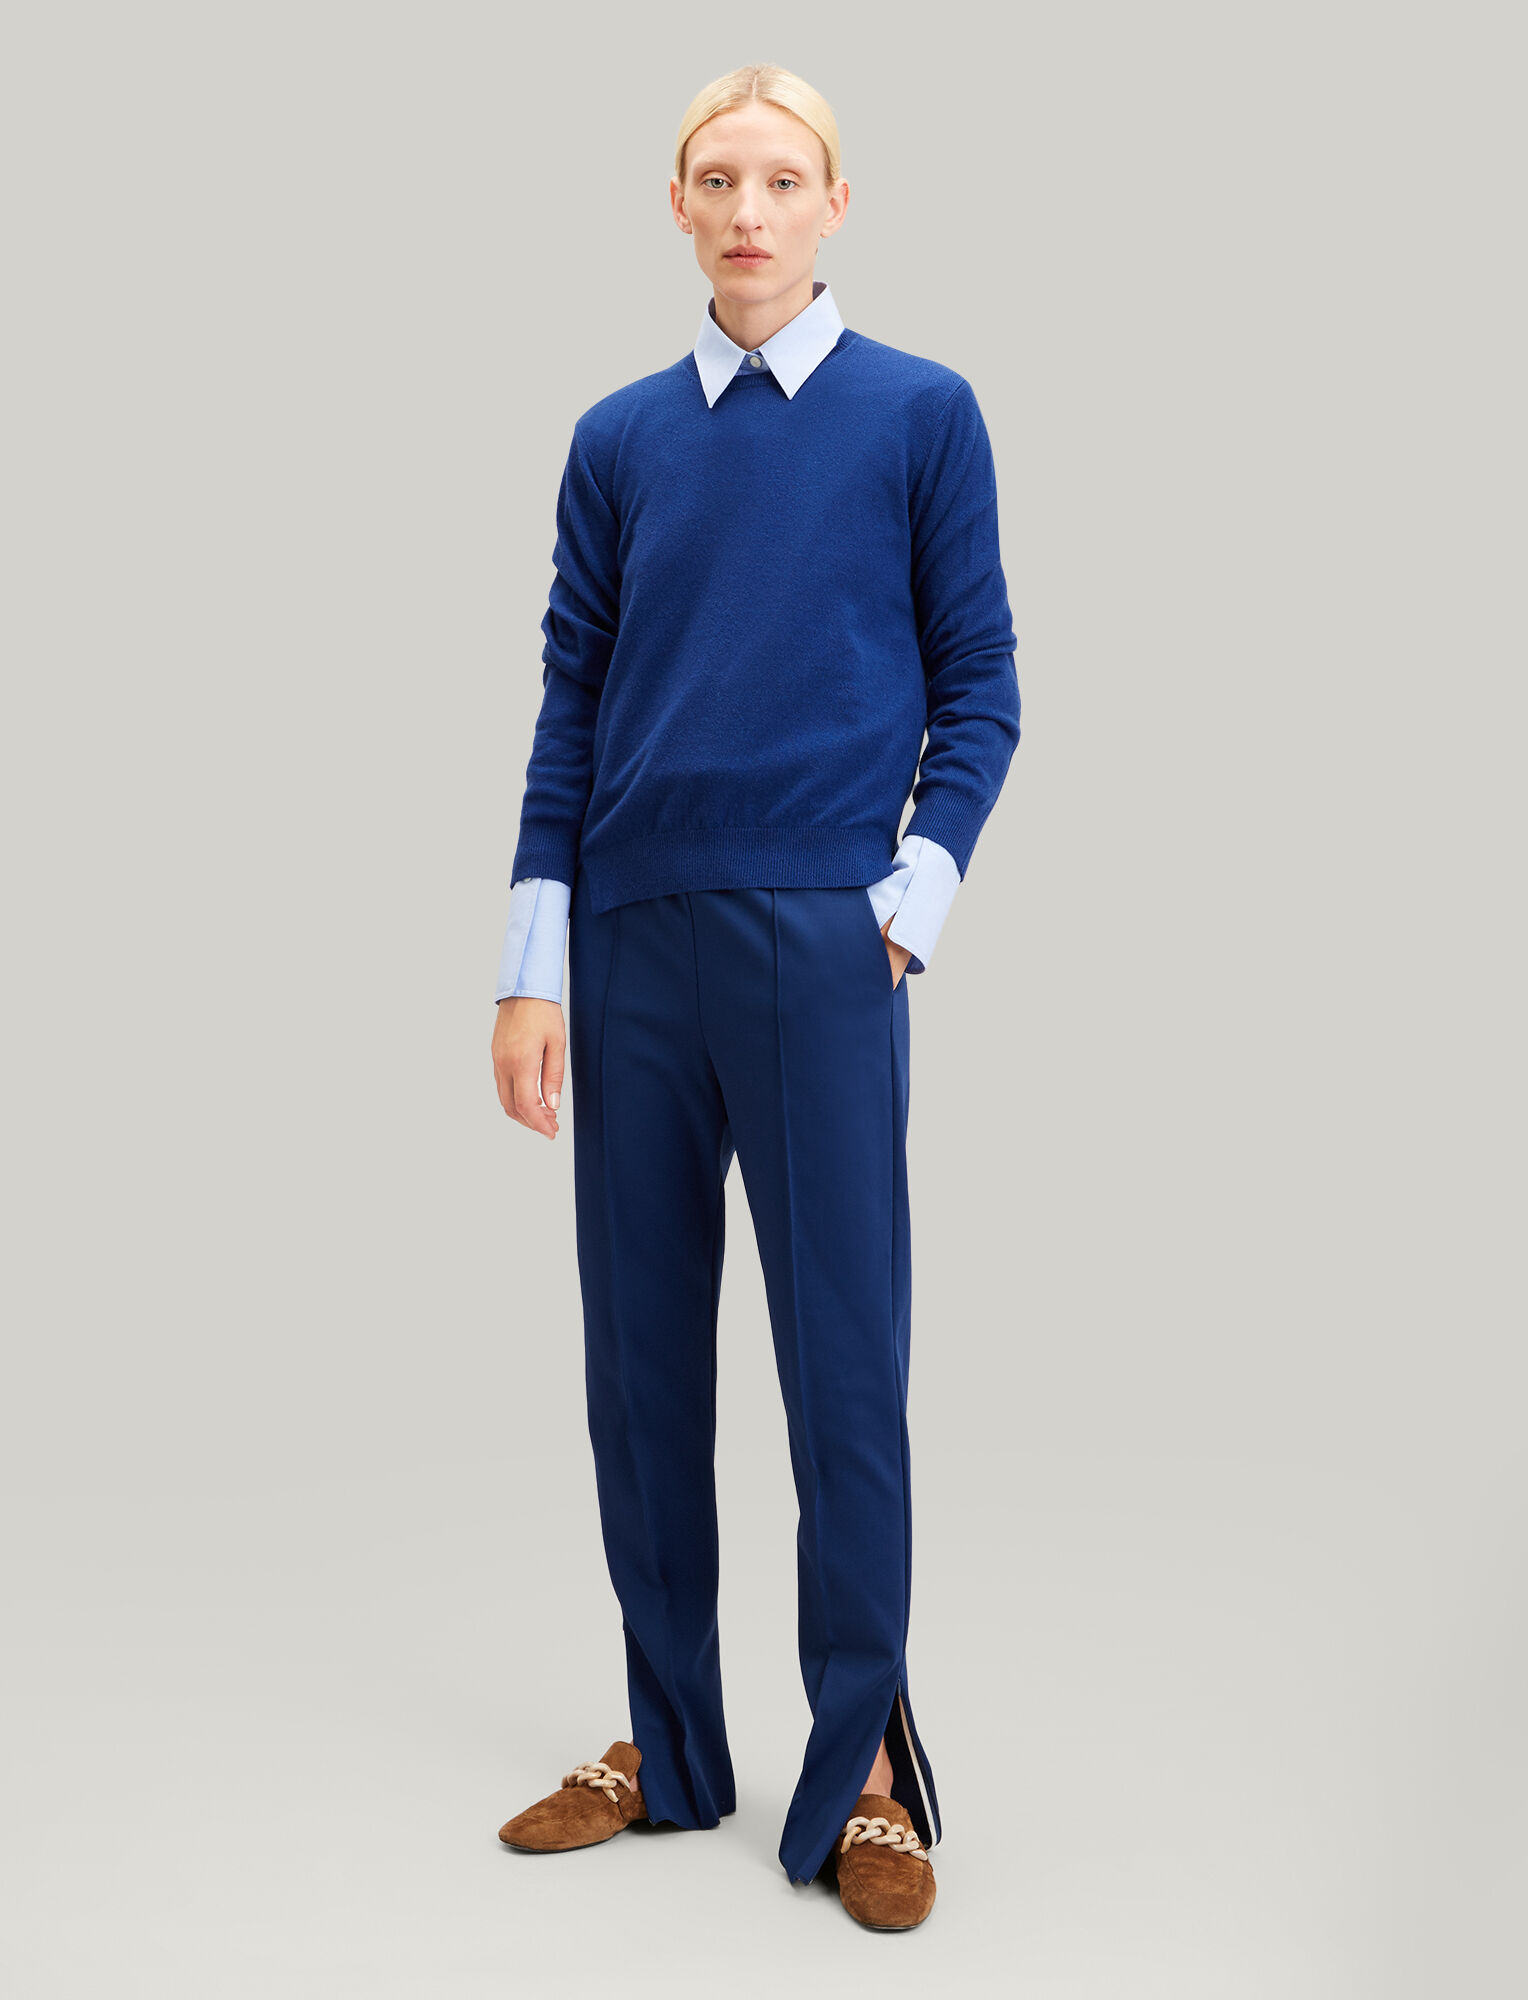 Joseph, Jog Technical Jersey Trousers, in ROYAL BLUE